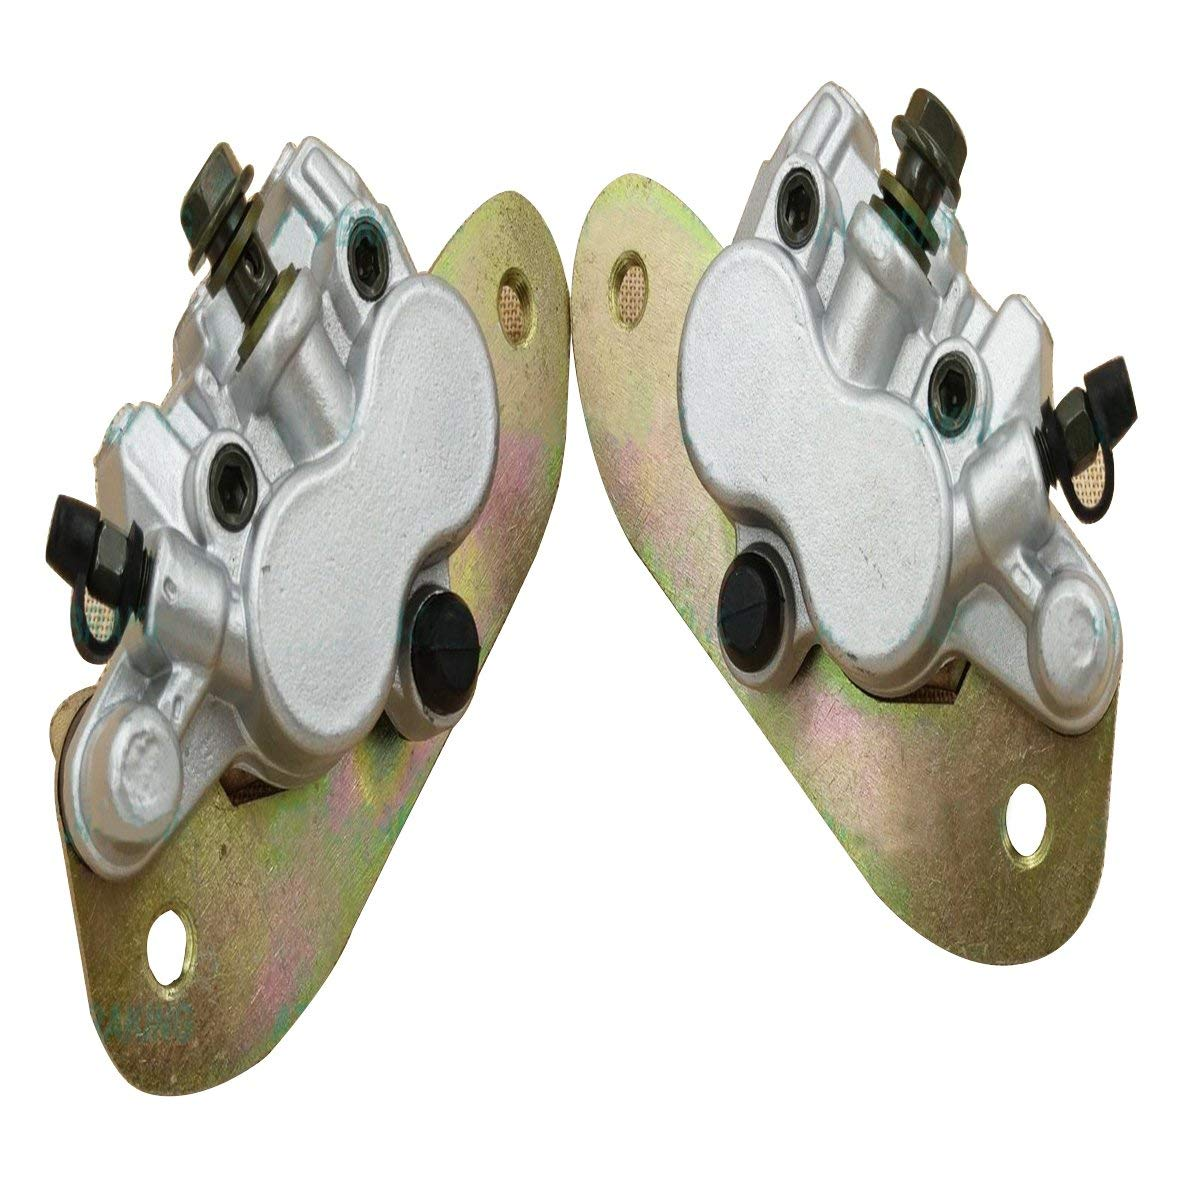 Amhousejoy Left /& Right Rear Brake Caliper Set for Yamaha UTV Rhino 700 YXR700 2008 2009 2010 2011 2012 2013 with Pads